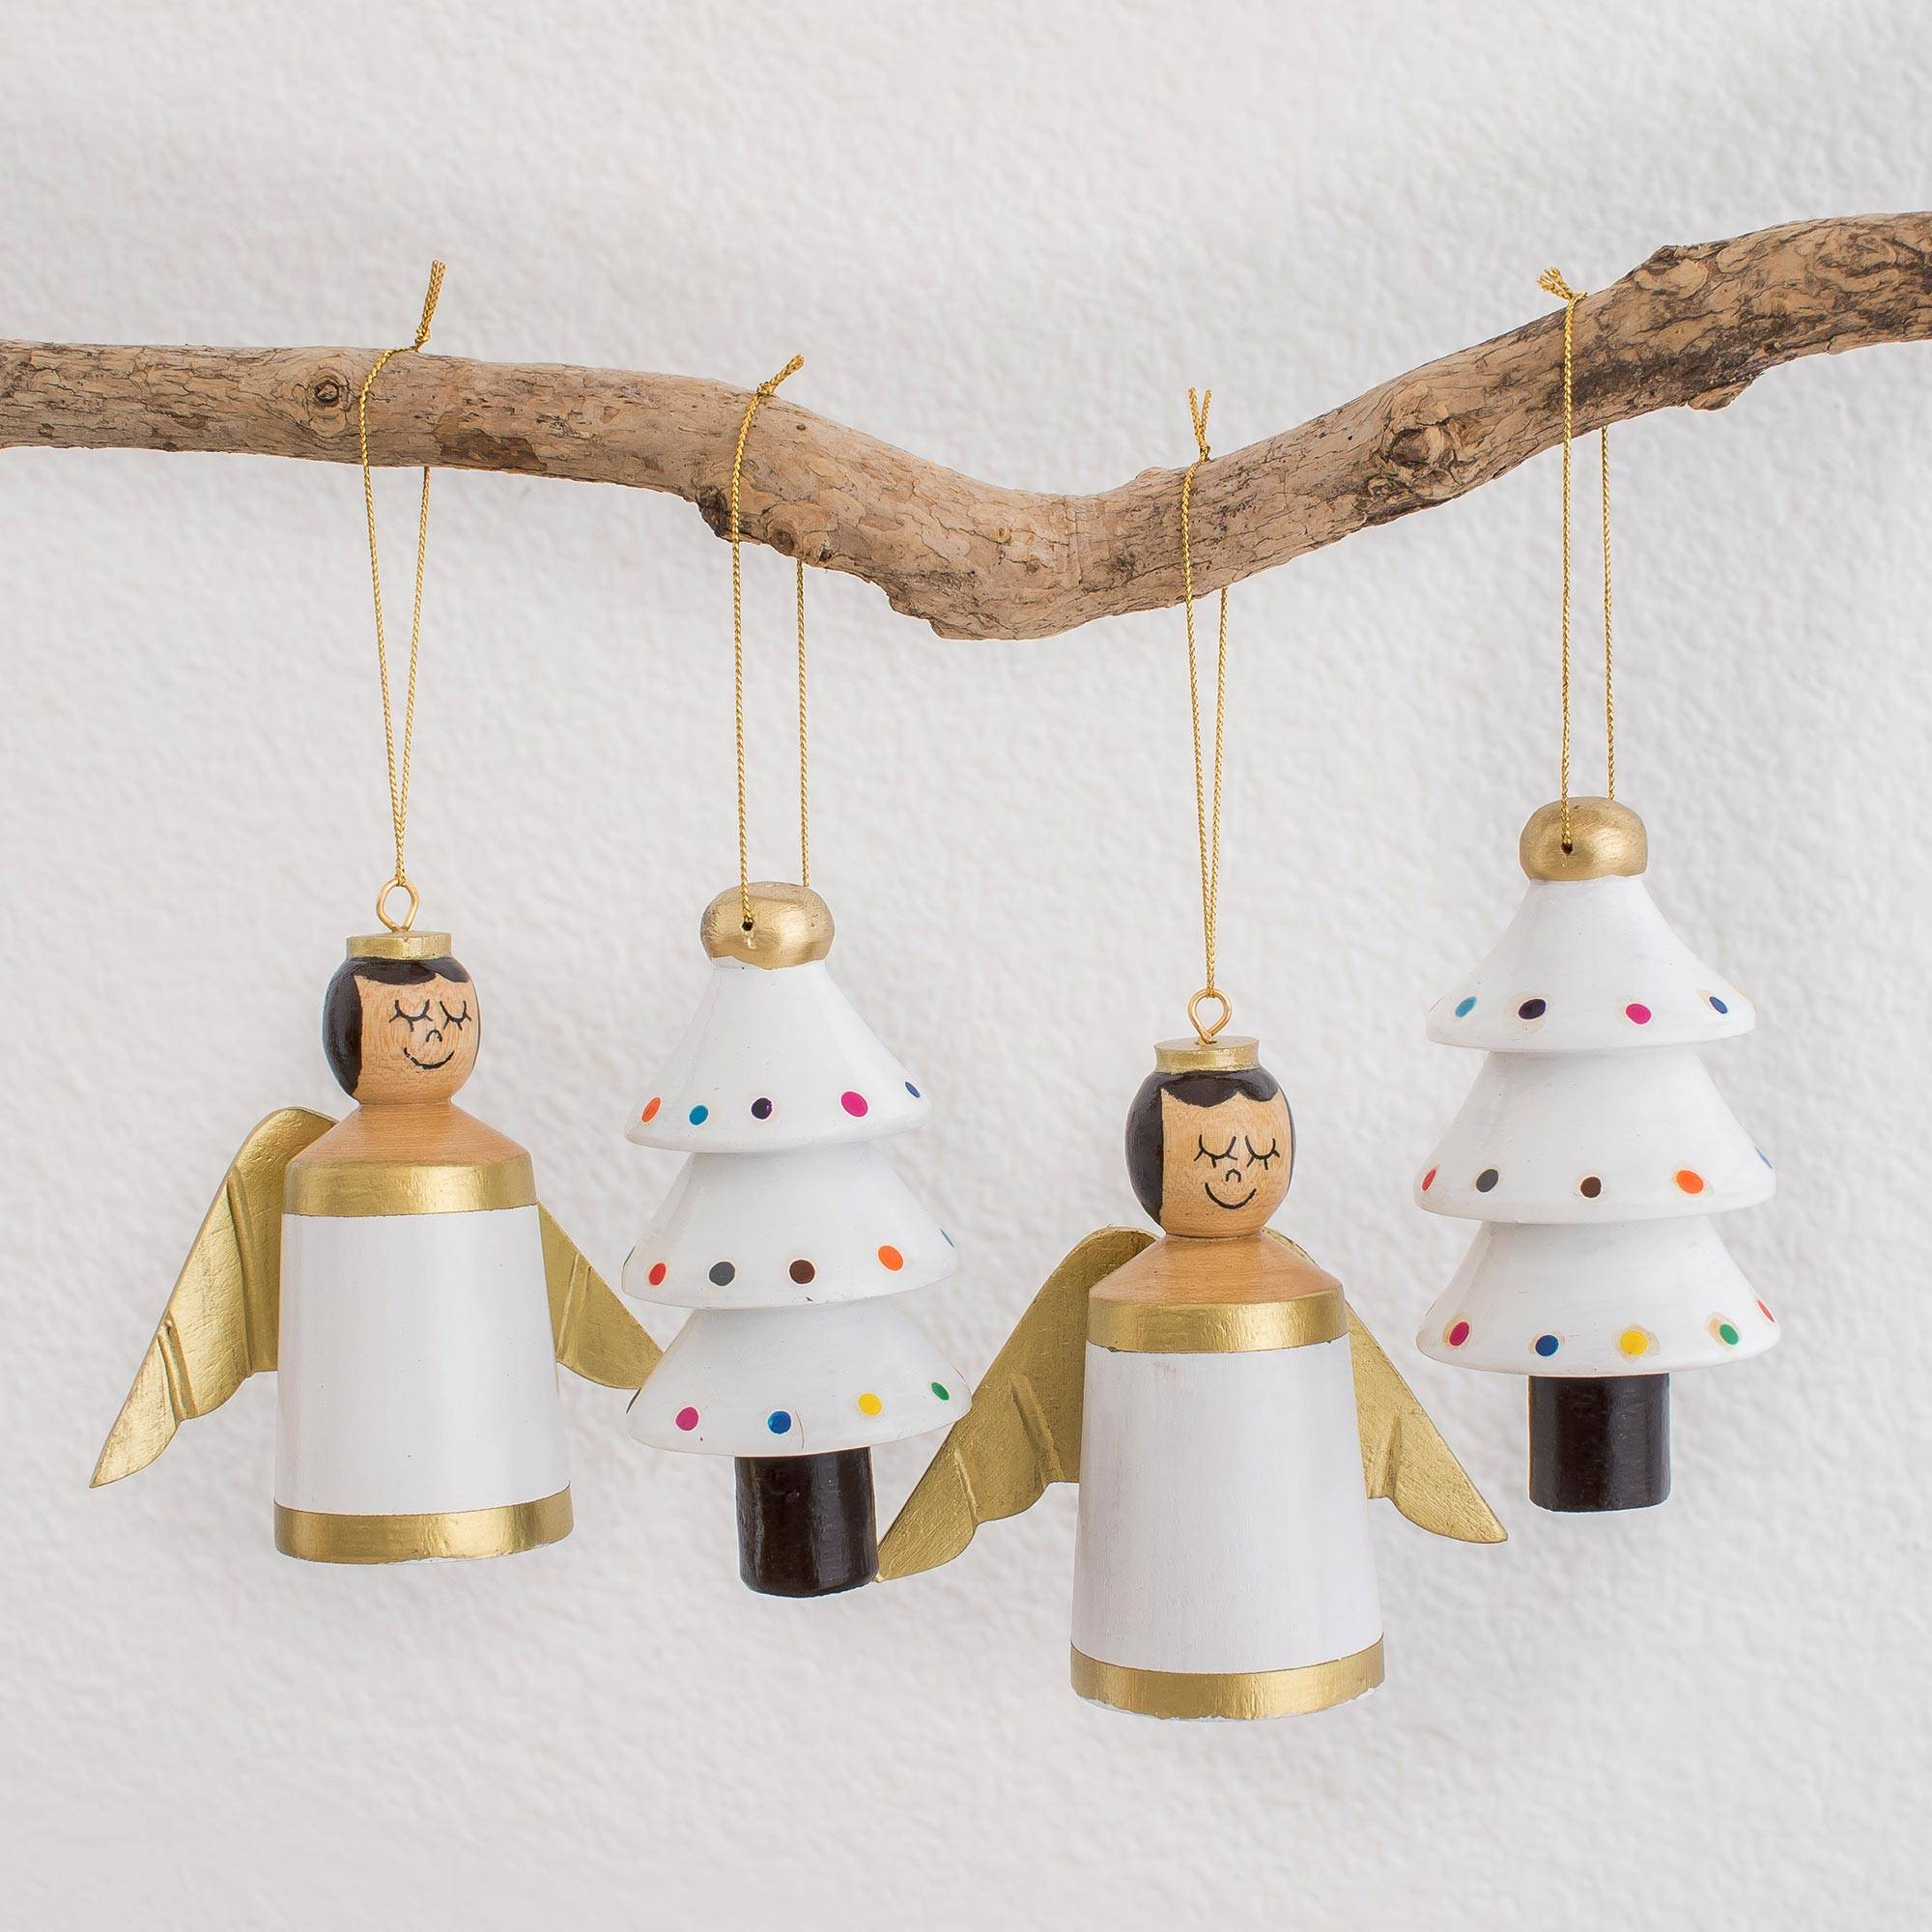 Gilded Christmas in White White Gold Reclaimed Wood Angel Tree Ornaments (Set of 4)